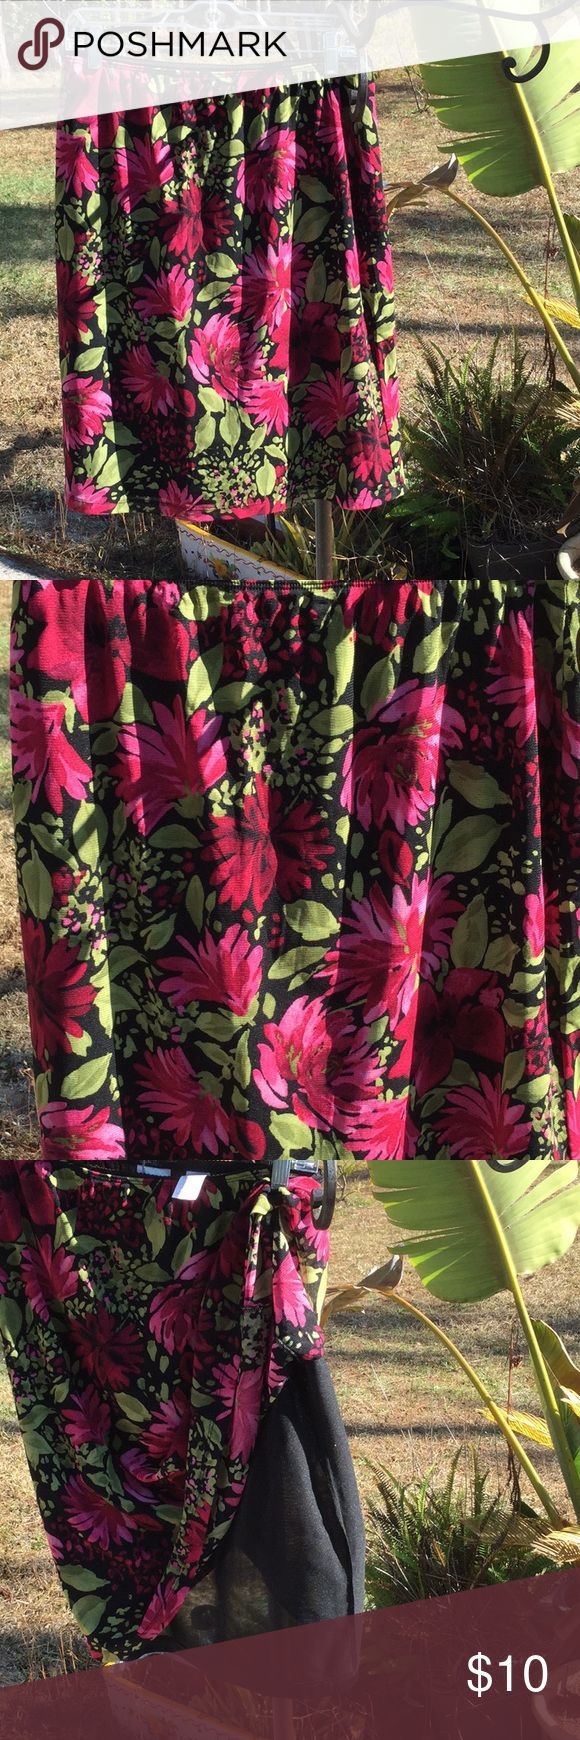 🌺Sexy Emma James Sz Lg Bright Flowered Skirt 🌺 🌺Too Sexy Emma James Size Large Bright Flowered / Black Lined Skirt 🌺Let This be your New Favorite Skirt Just Put on & Go 🌺I Live in Smoke Free Home 🌺Skirt Waist is Elastic Measures 33 inches 🌺From Waist to Hem of Skirt Measures 22 1/2 inches 🌺Great Skirt to Travel with does not Wrinkle Fun Fun to Wear 🌺I Love ❤️ to Do Deals & Love ❤️ to Do Bundles  Thanks So Much For Looking Emma James Skirts Midi